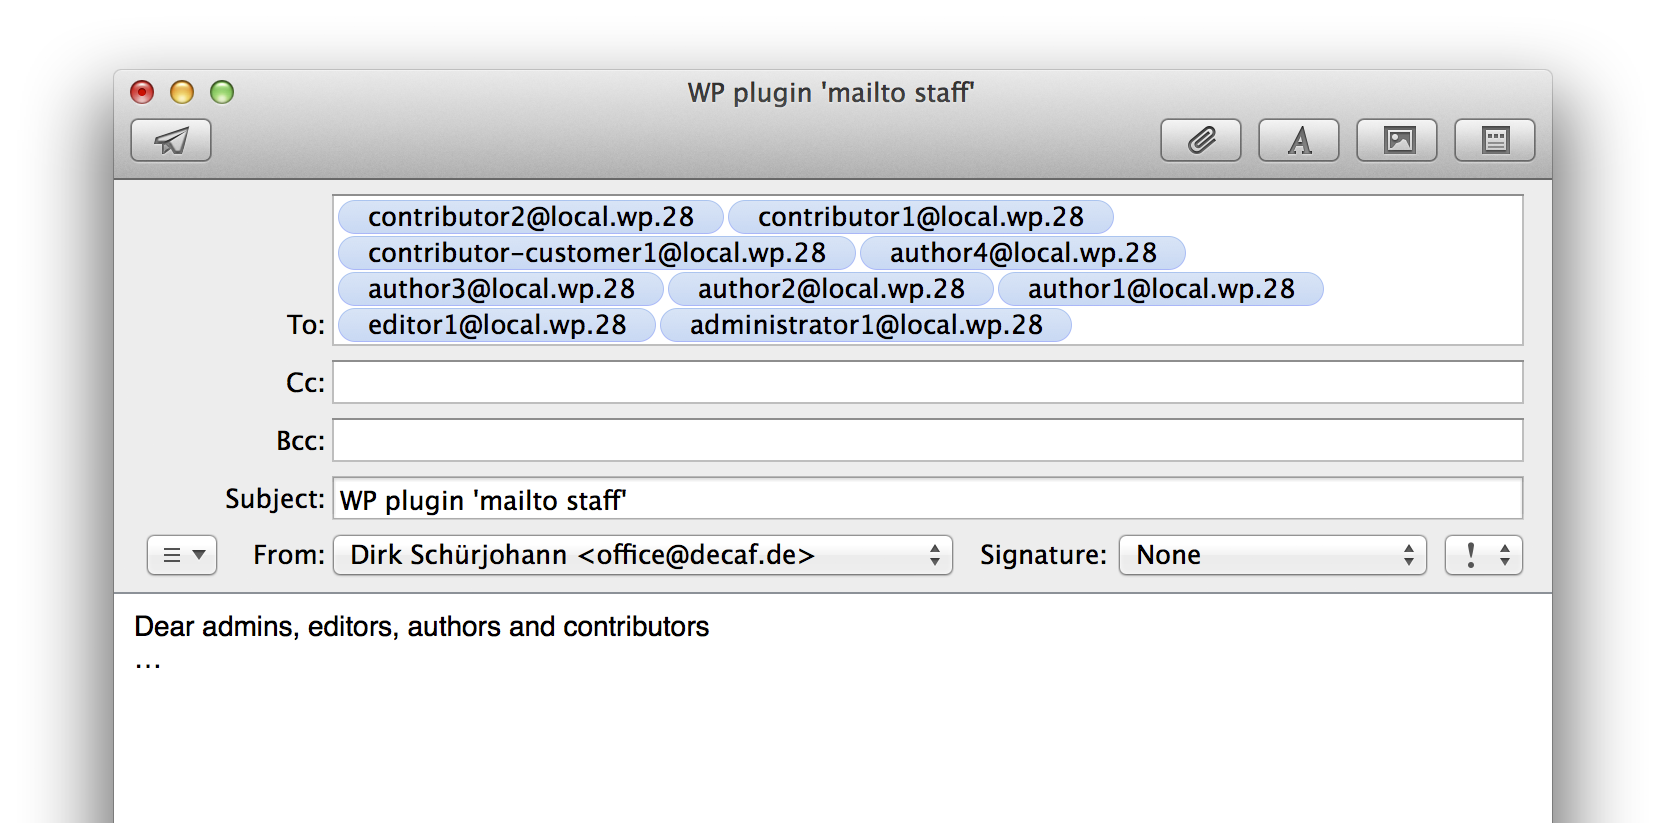 mailtostaff screenshot 3